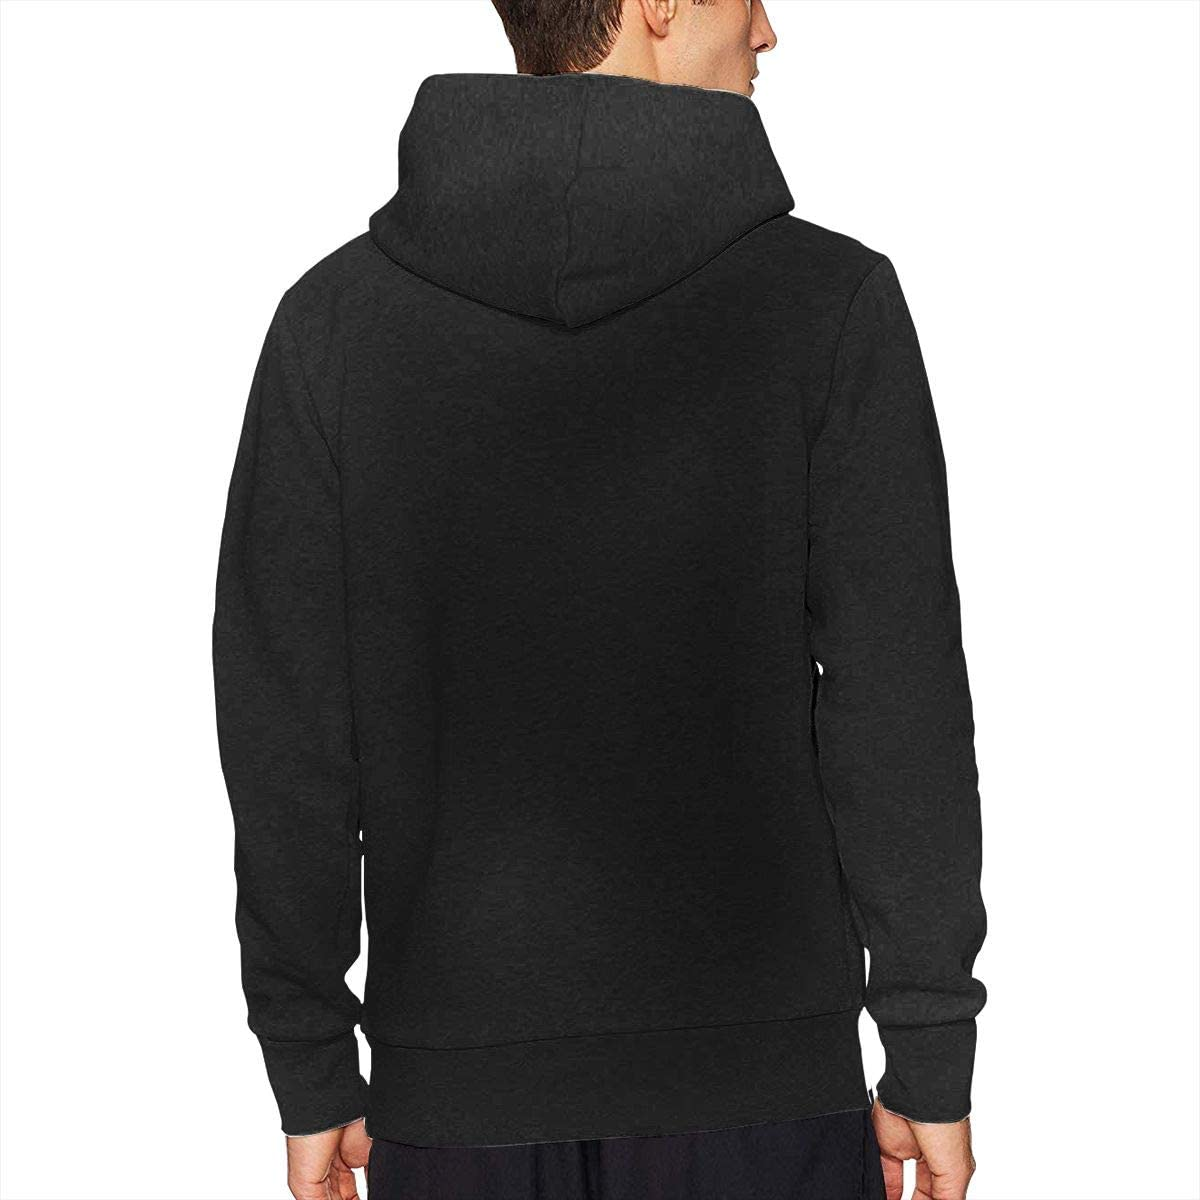 CHARLESNORTON Borderlands 2 Mans Cotton Casual Cute Hooded Sweatshirts Black